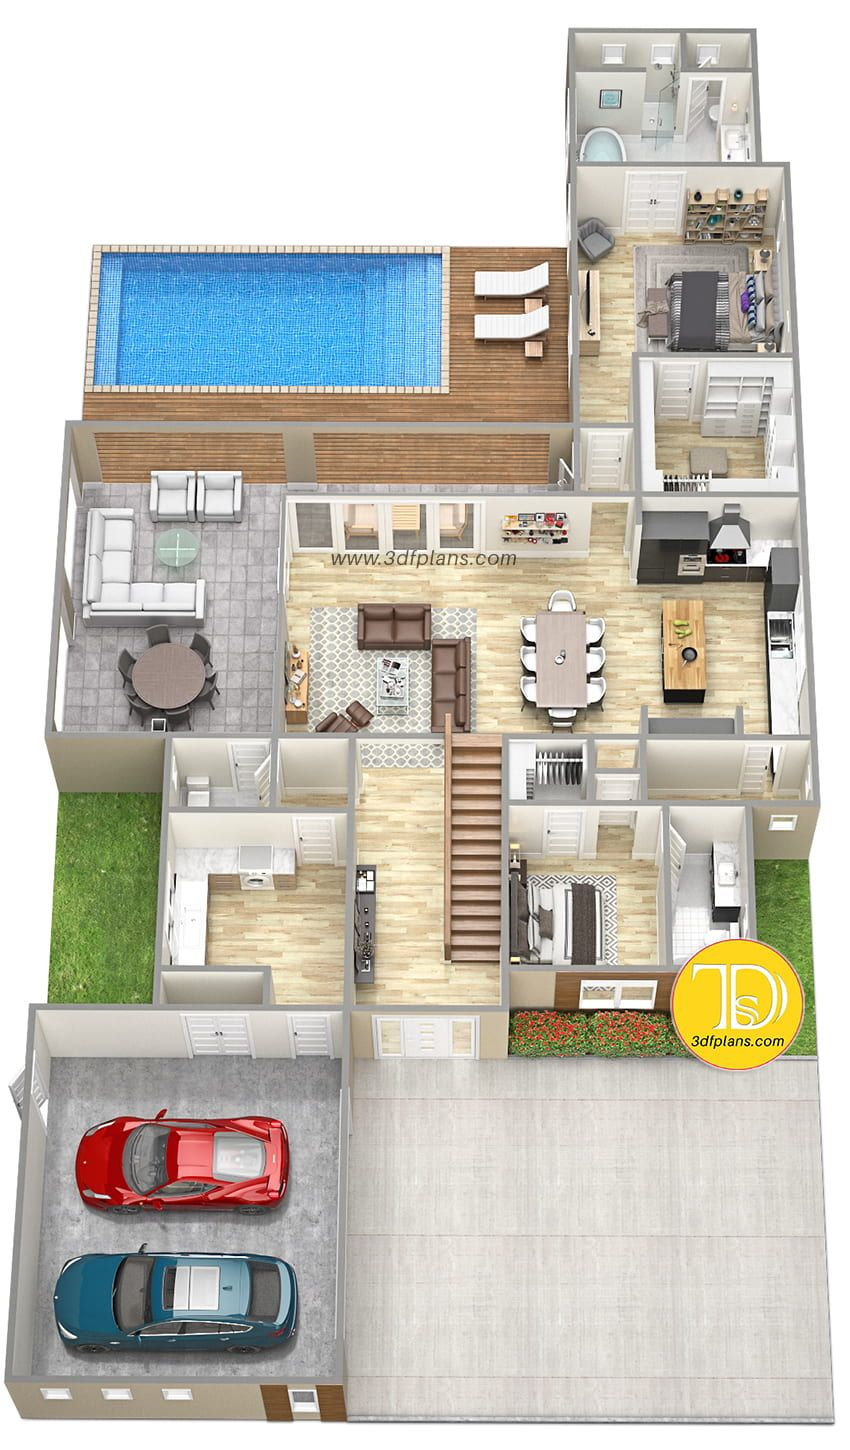 Big Home 3d Floor Plan Pool House Plans 5 Bedroom House Plans House Plans